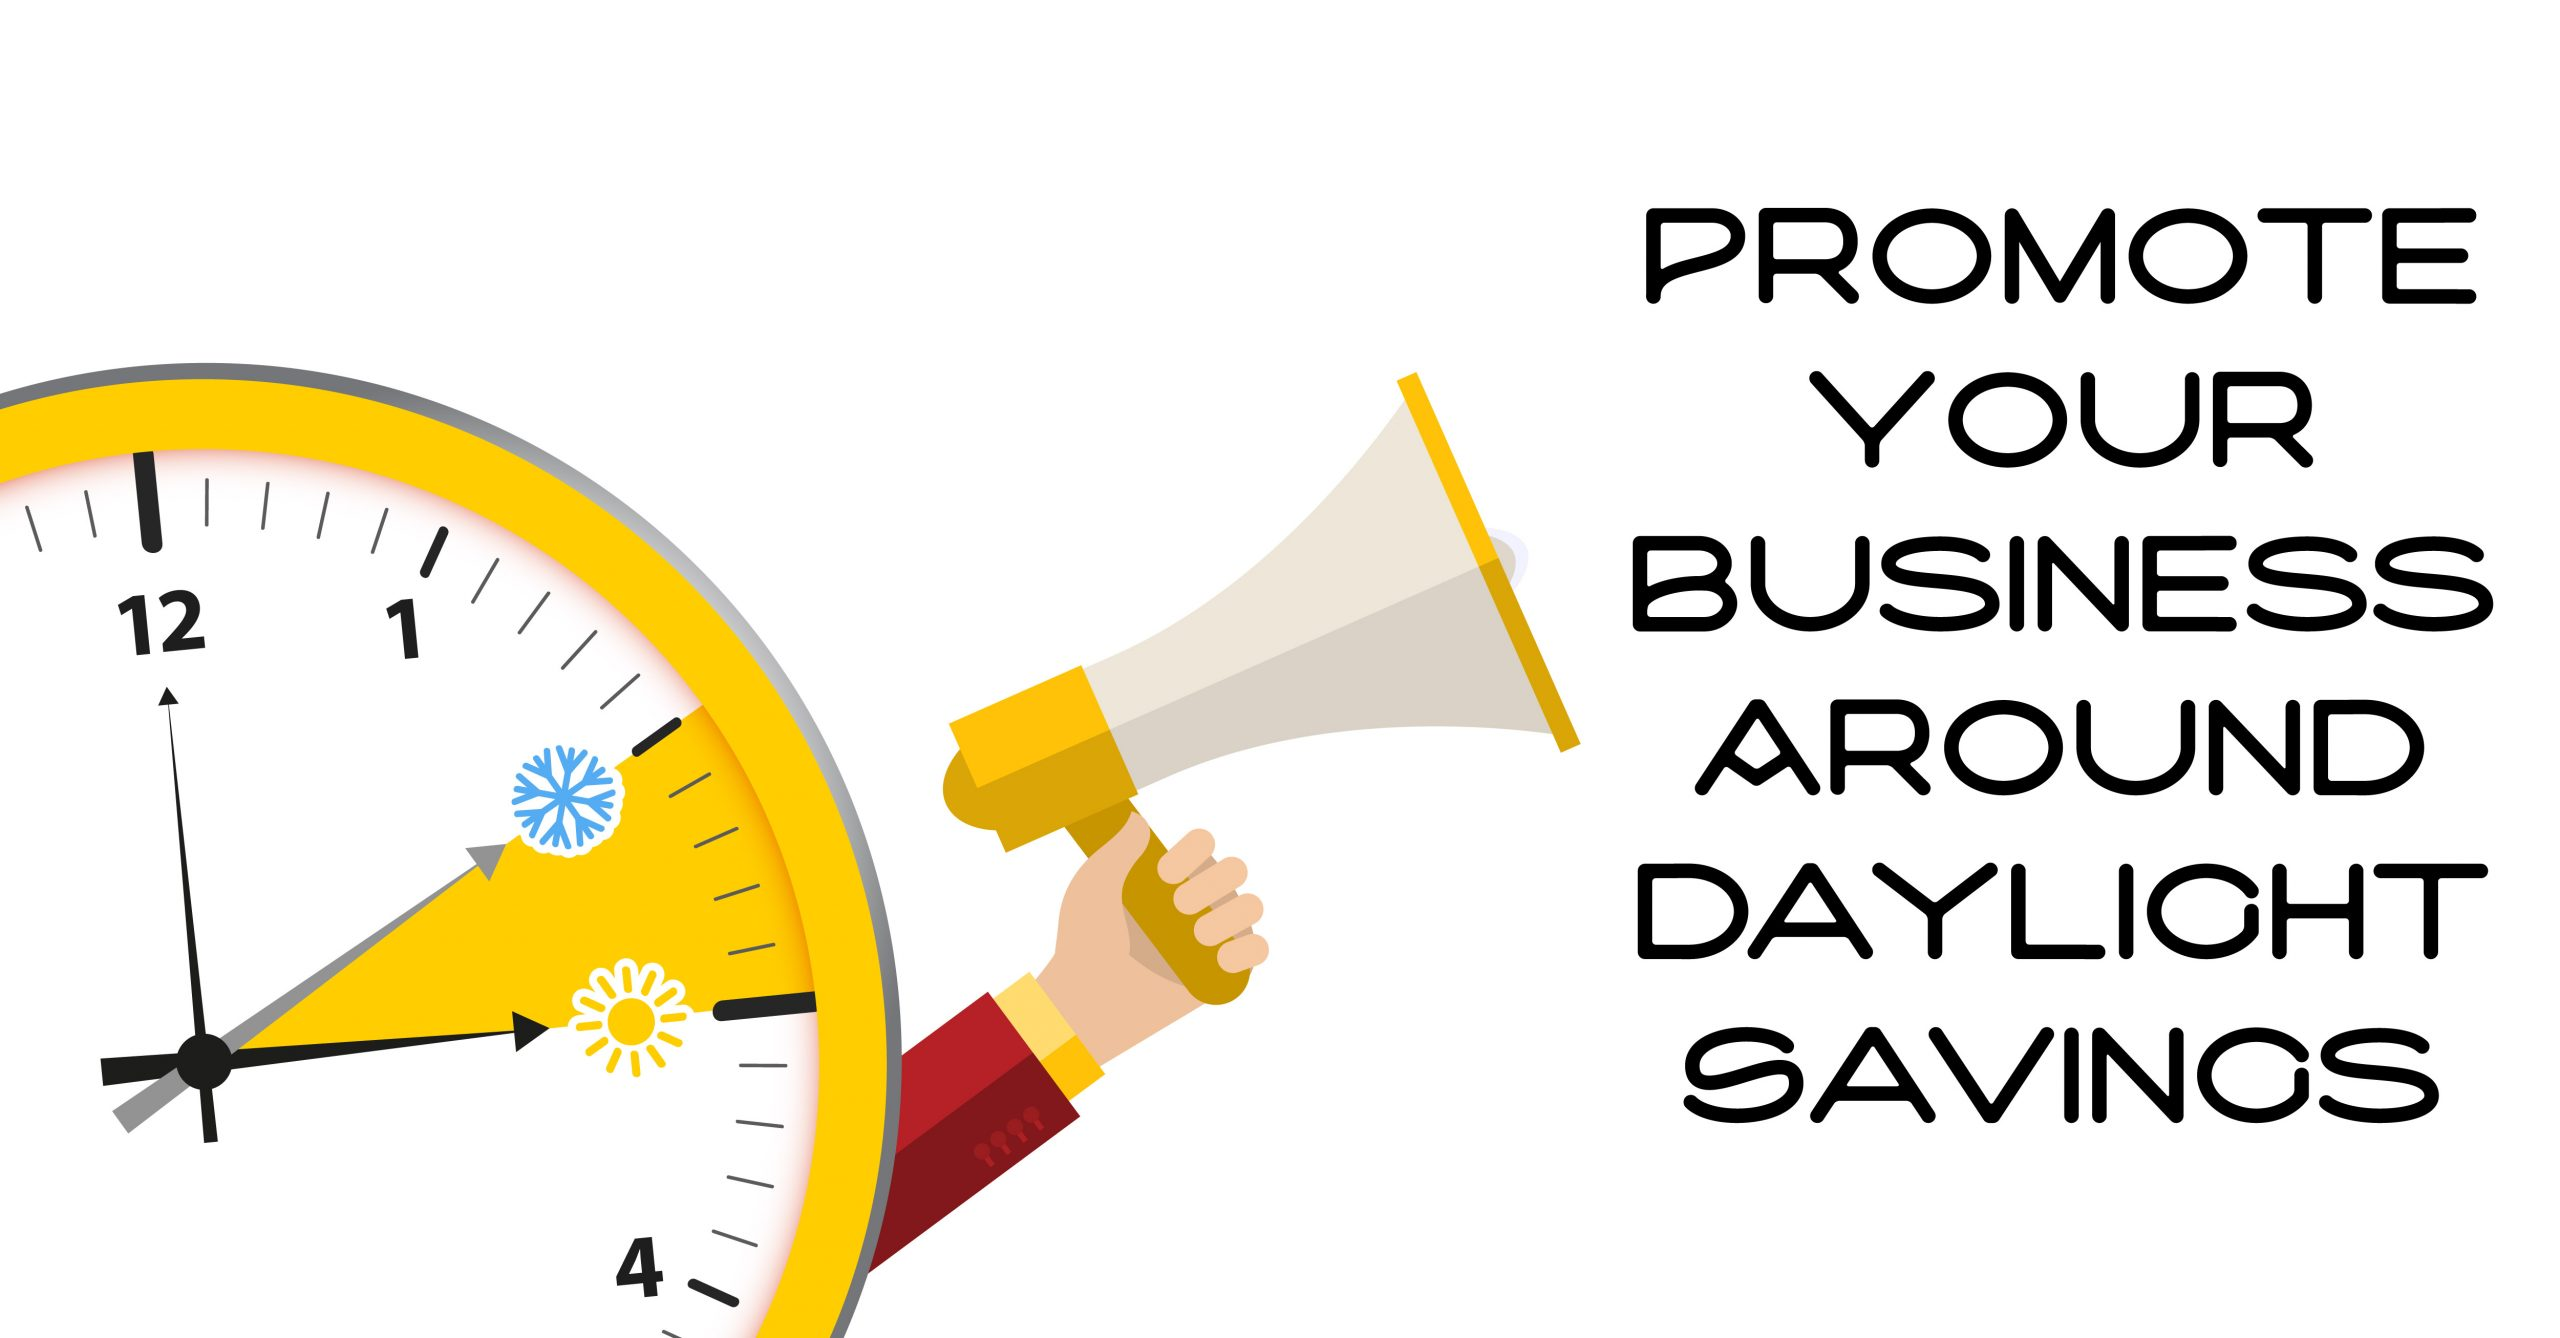 Promoting Your Business Around Daylight Saving Time